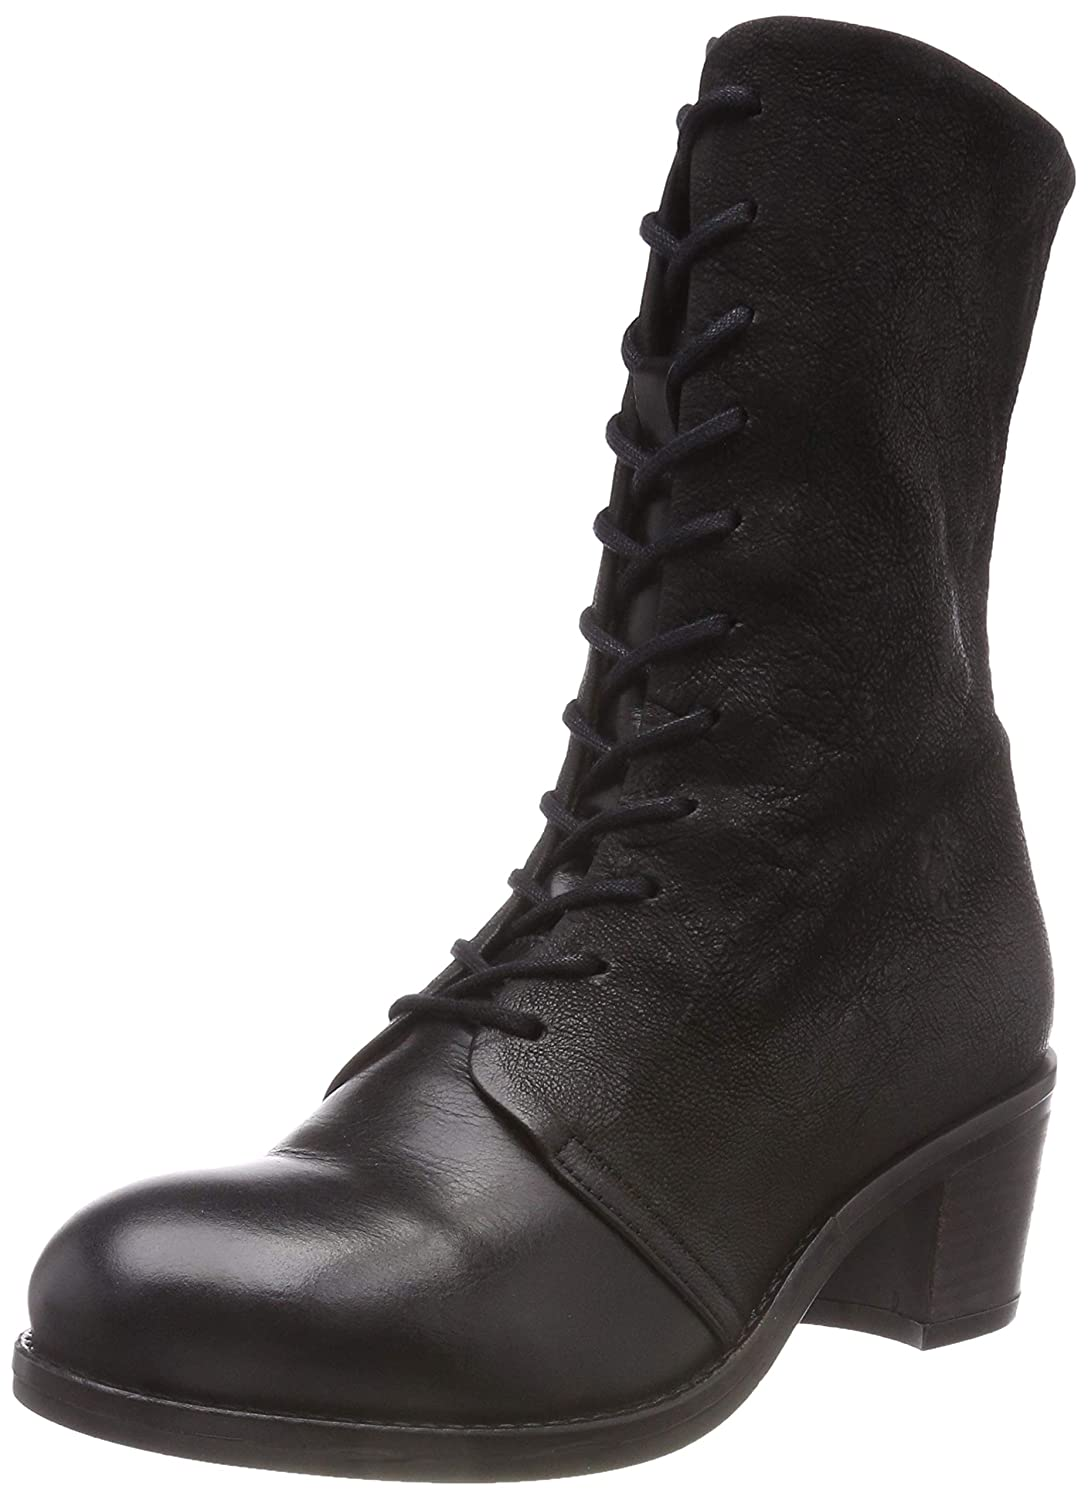 Fly London Zeko324fly, Bottes London Classiques (Black/Black Femme Noir Bottes (Black/Black 000) 45364e1 - reprogrammed.space